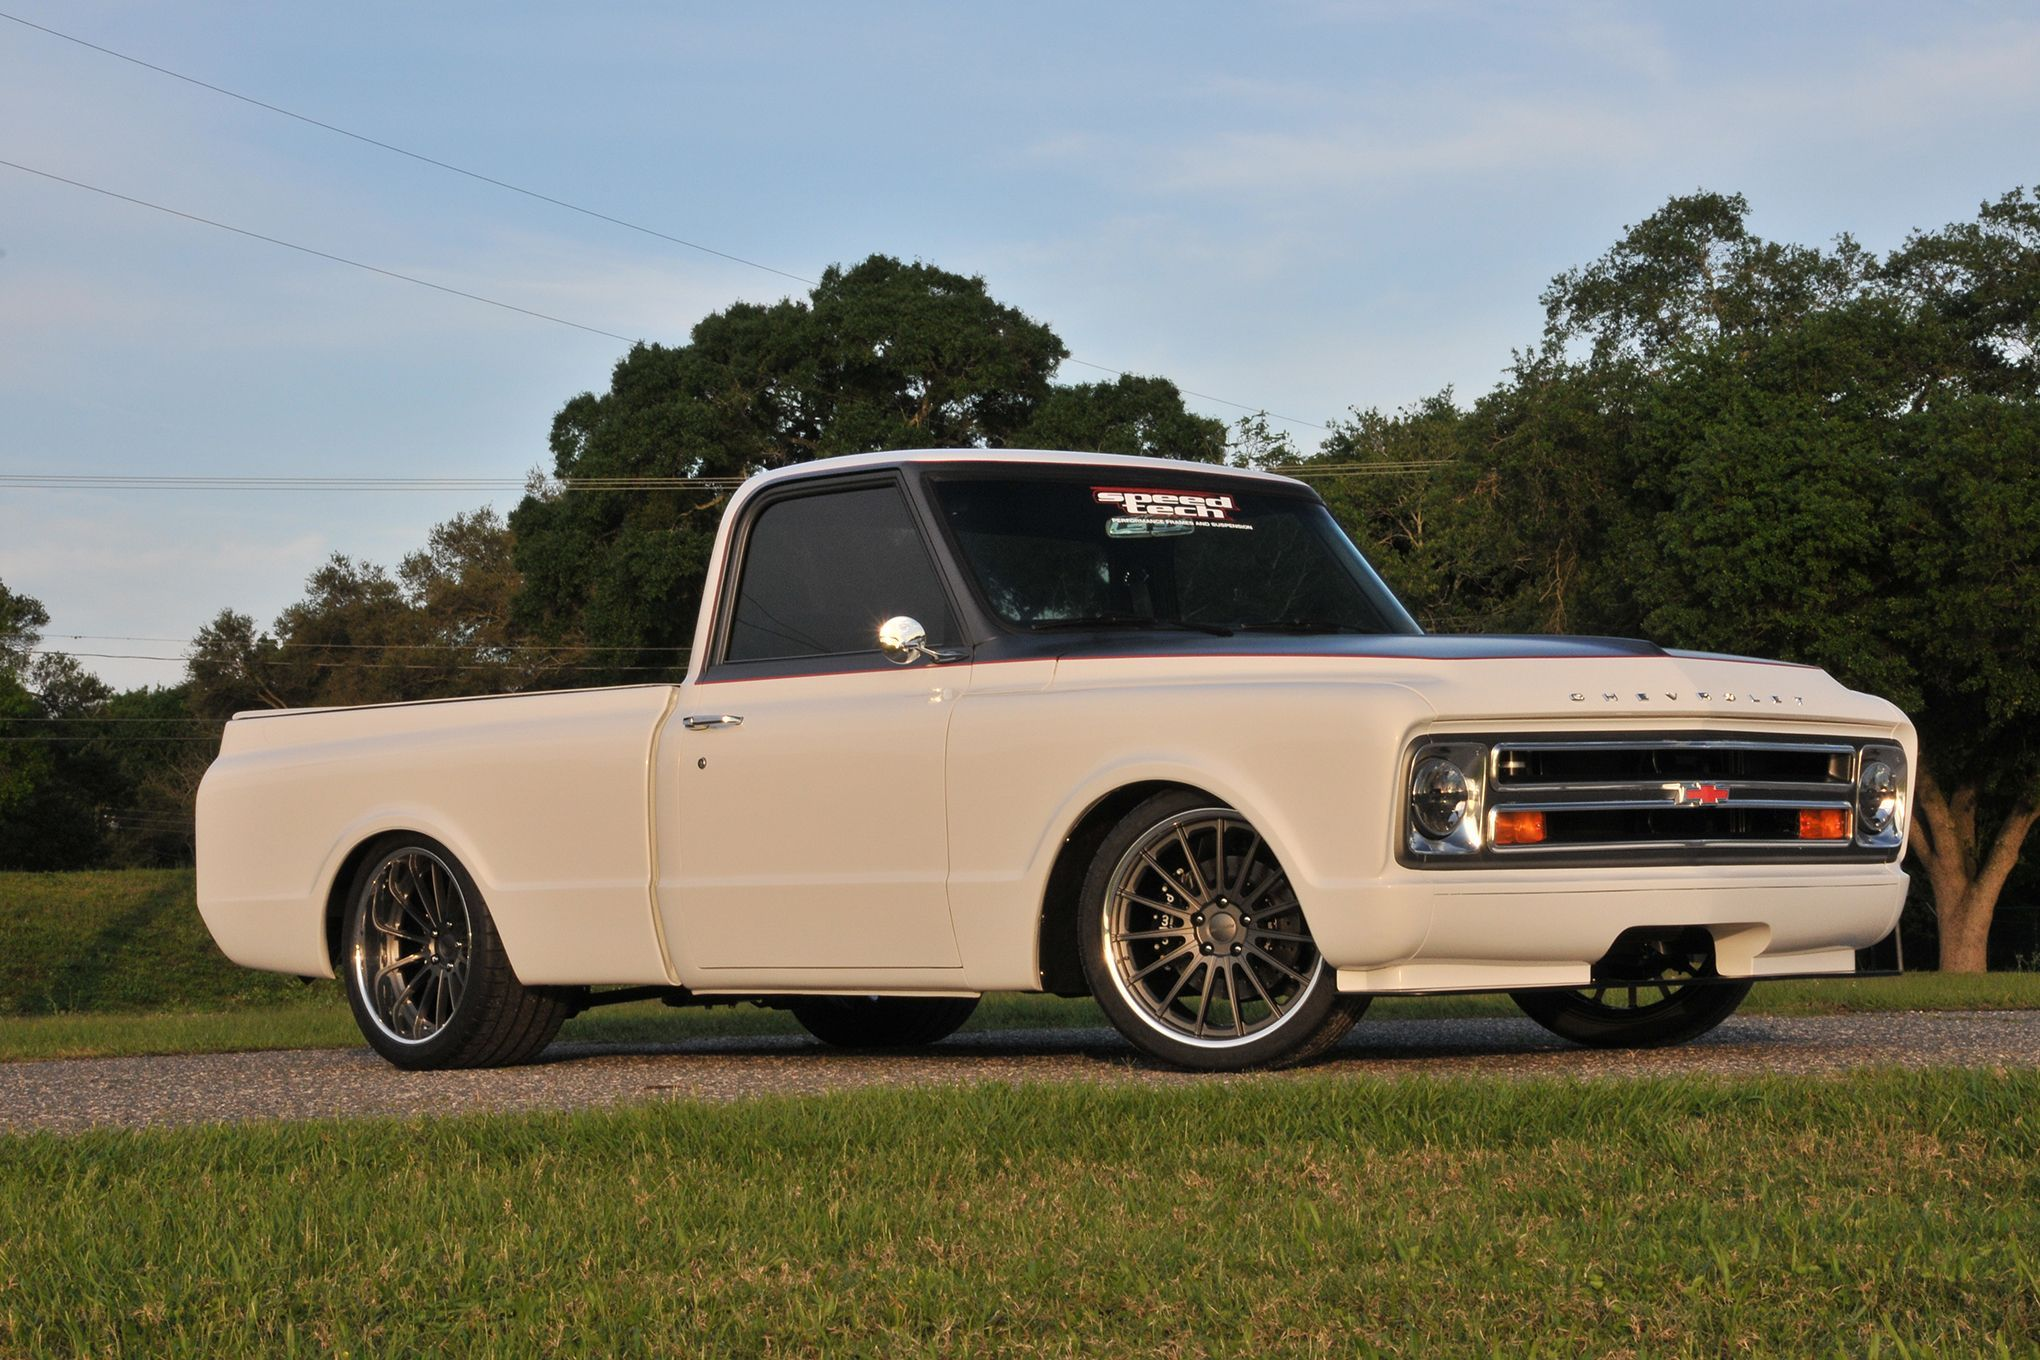 This gorgeous 68 chevy c10 truck by tom argue design is powered by